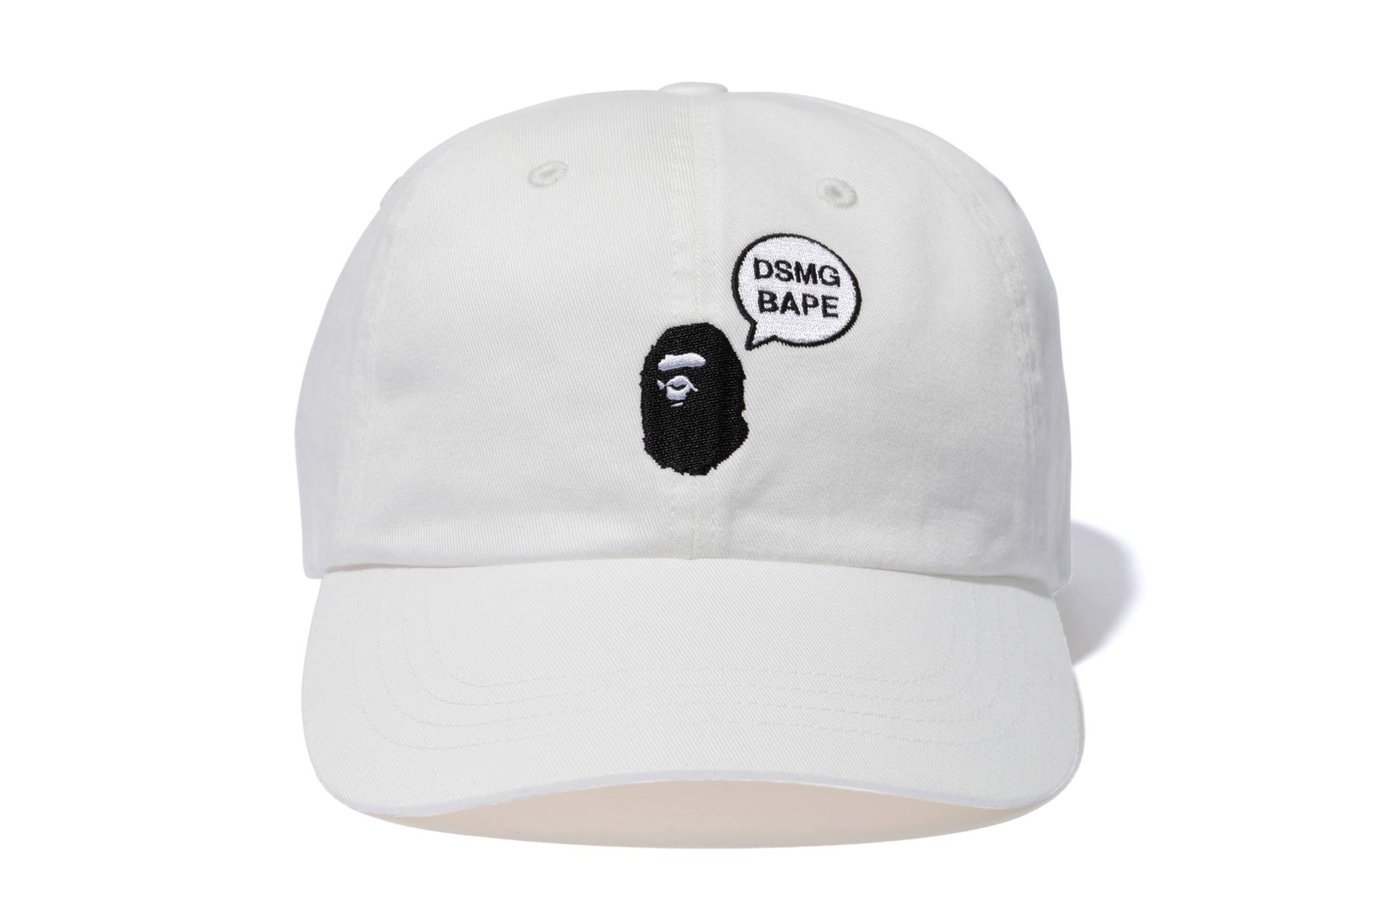 http---hypebeast.com-image-2017-04-bape-dad-hat-dover-street-market-ginza-2